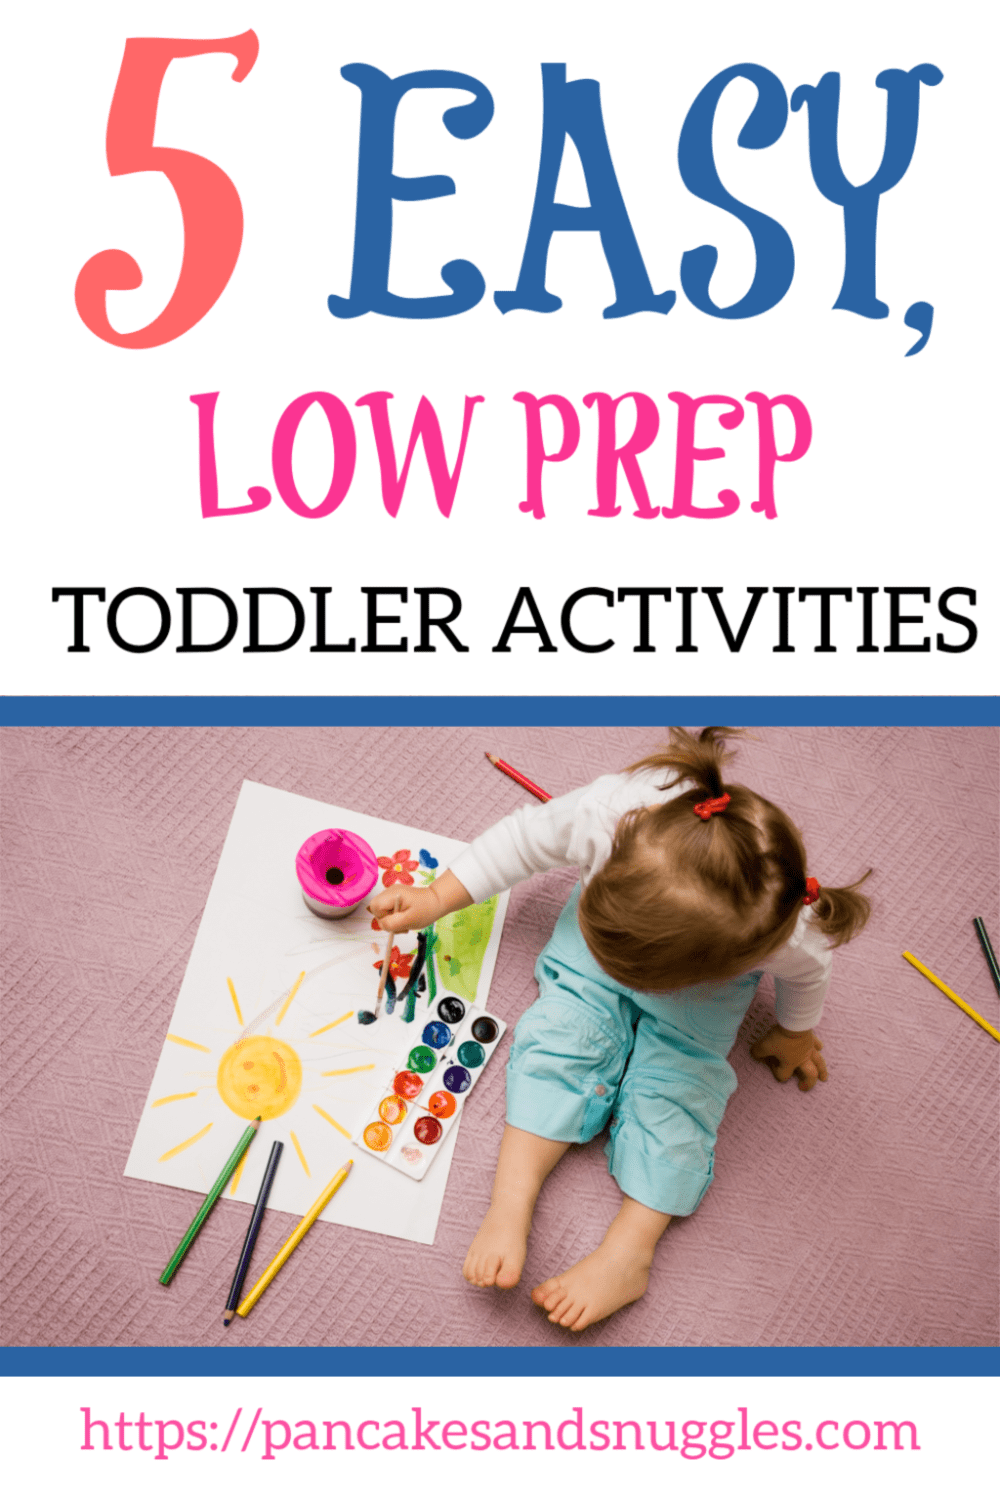 Looking for something to keep your toddler occupied while you whip up dinner? Look no further! Here are 5 easy, low prep toddler activities. #toddleractivities, #toddlerlife